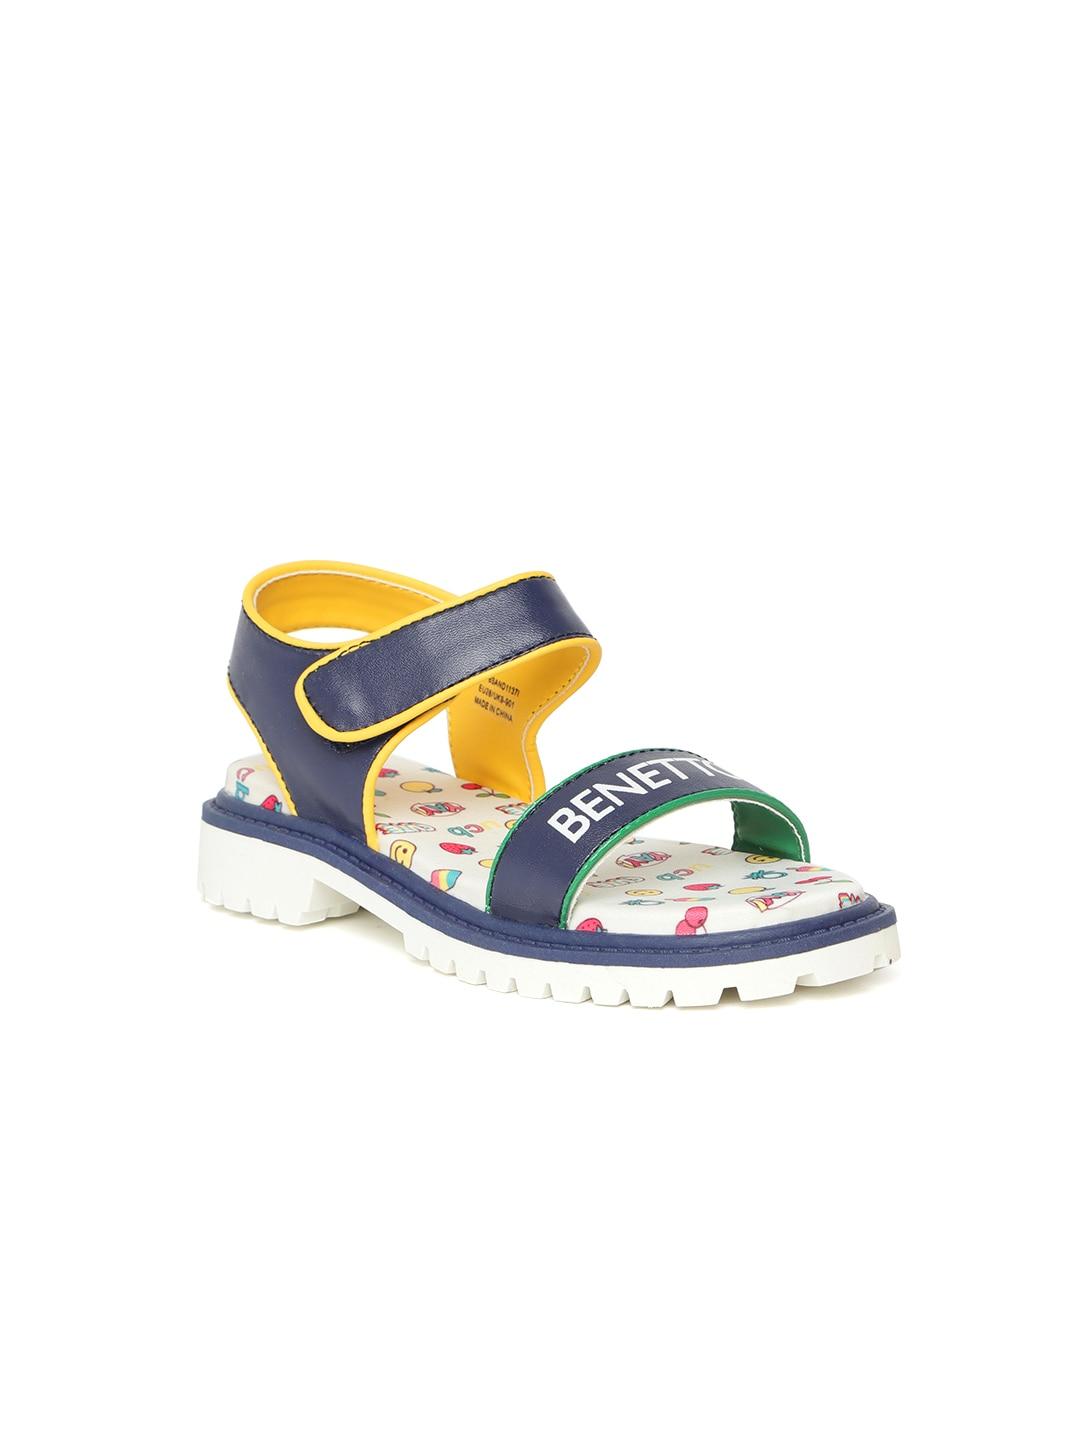 1b1821378 Kids Footwear - Buy Footwear For Kids Online in India